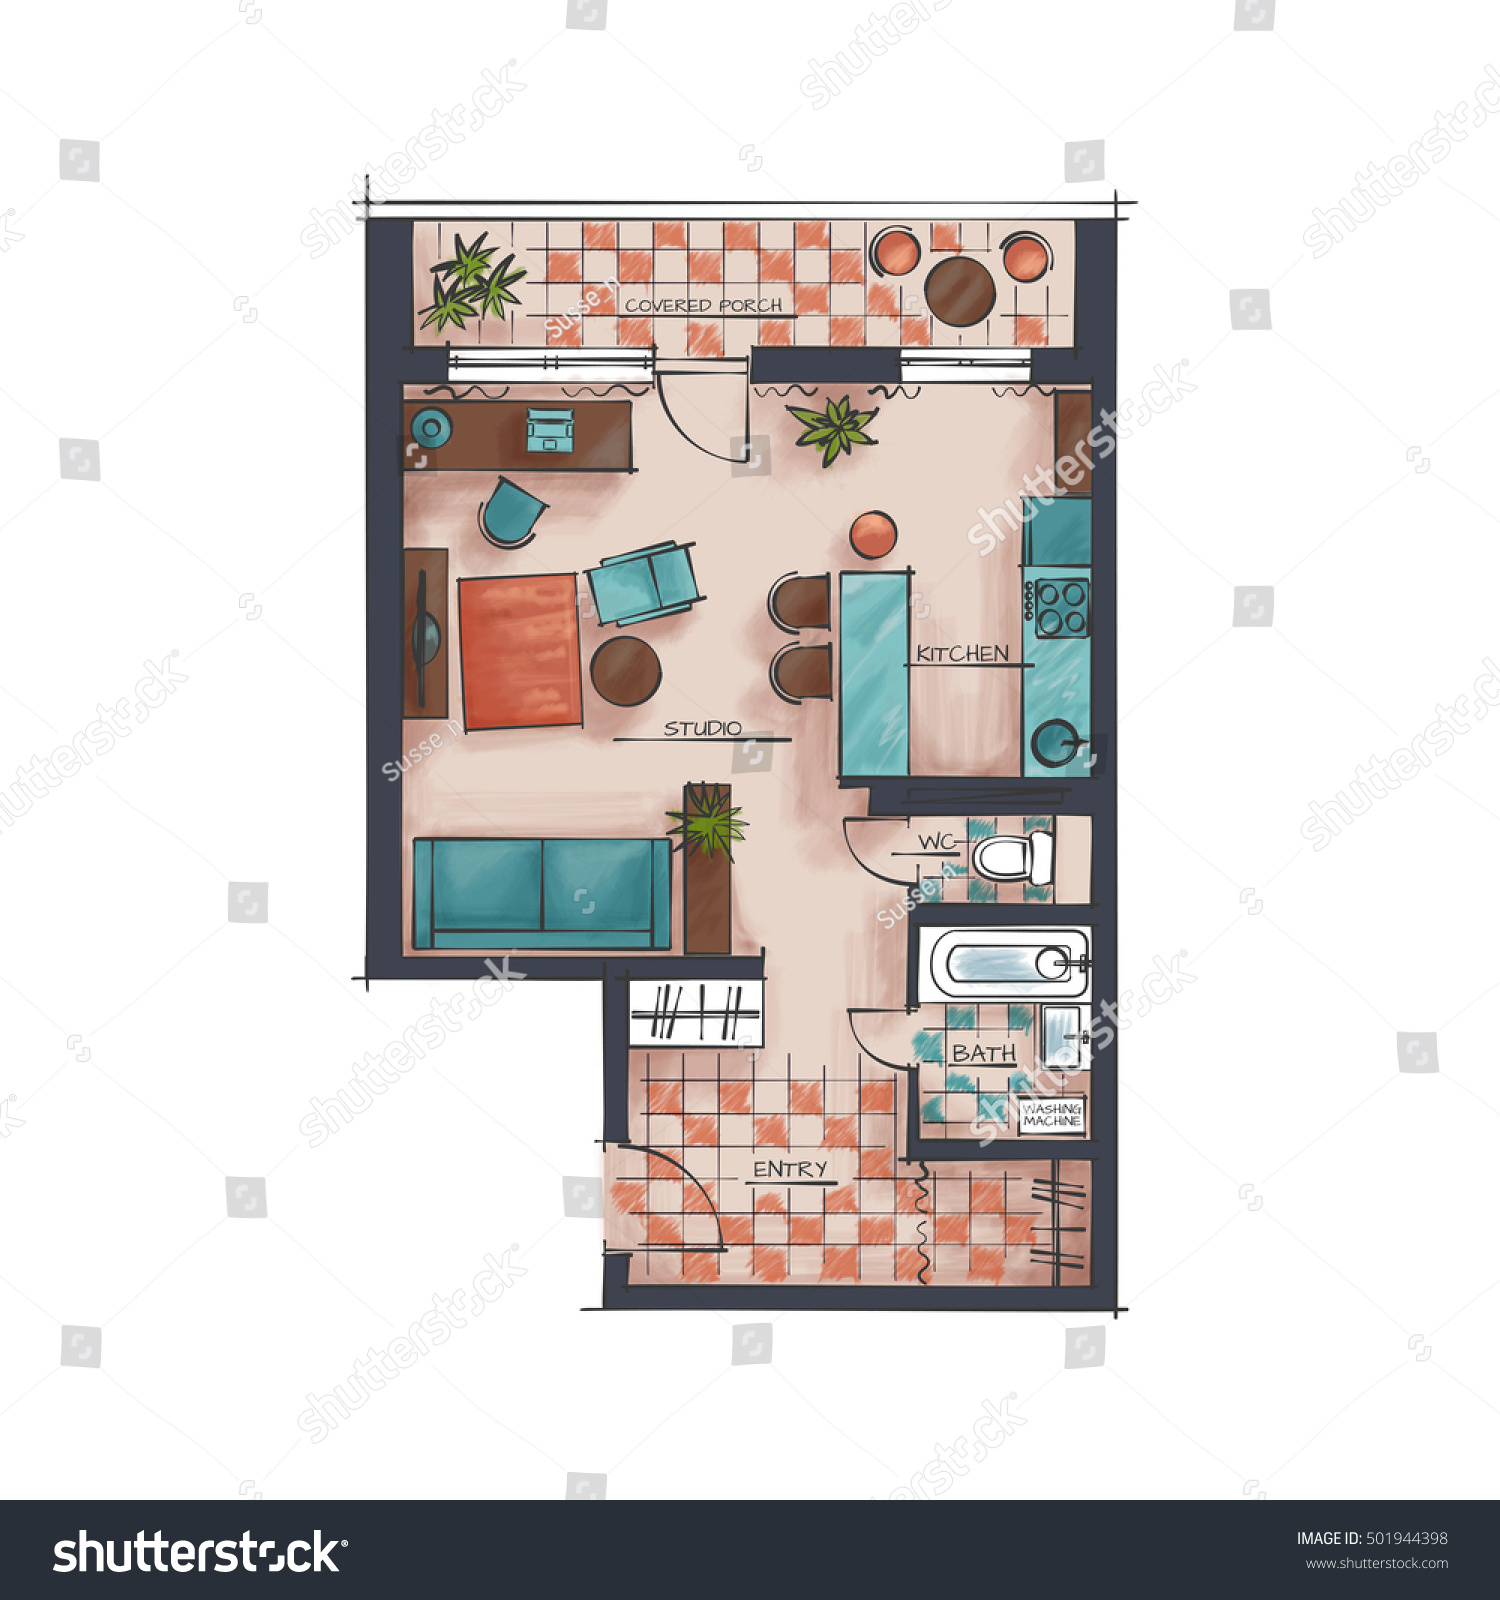 Architectural 3d Floor Plan Rendering: Architectural Color Floor Plan Studio Apartment Stock